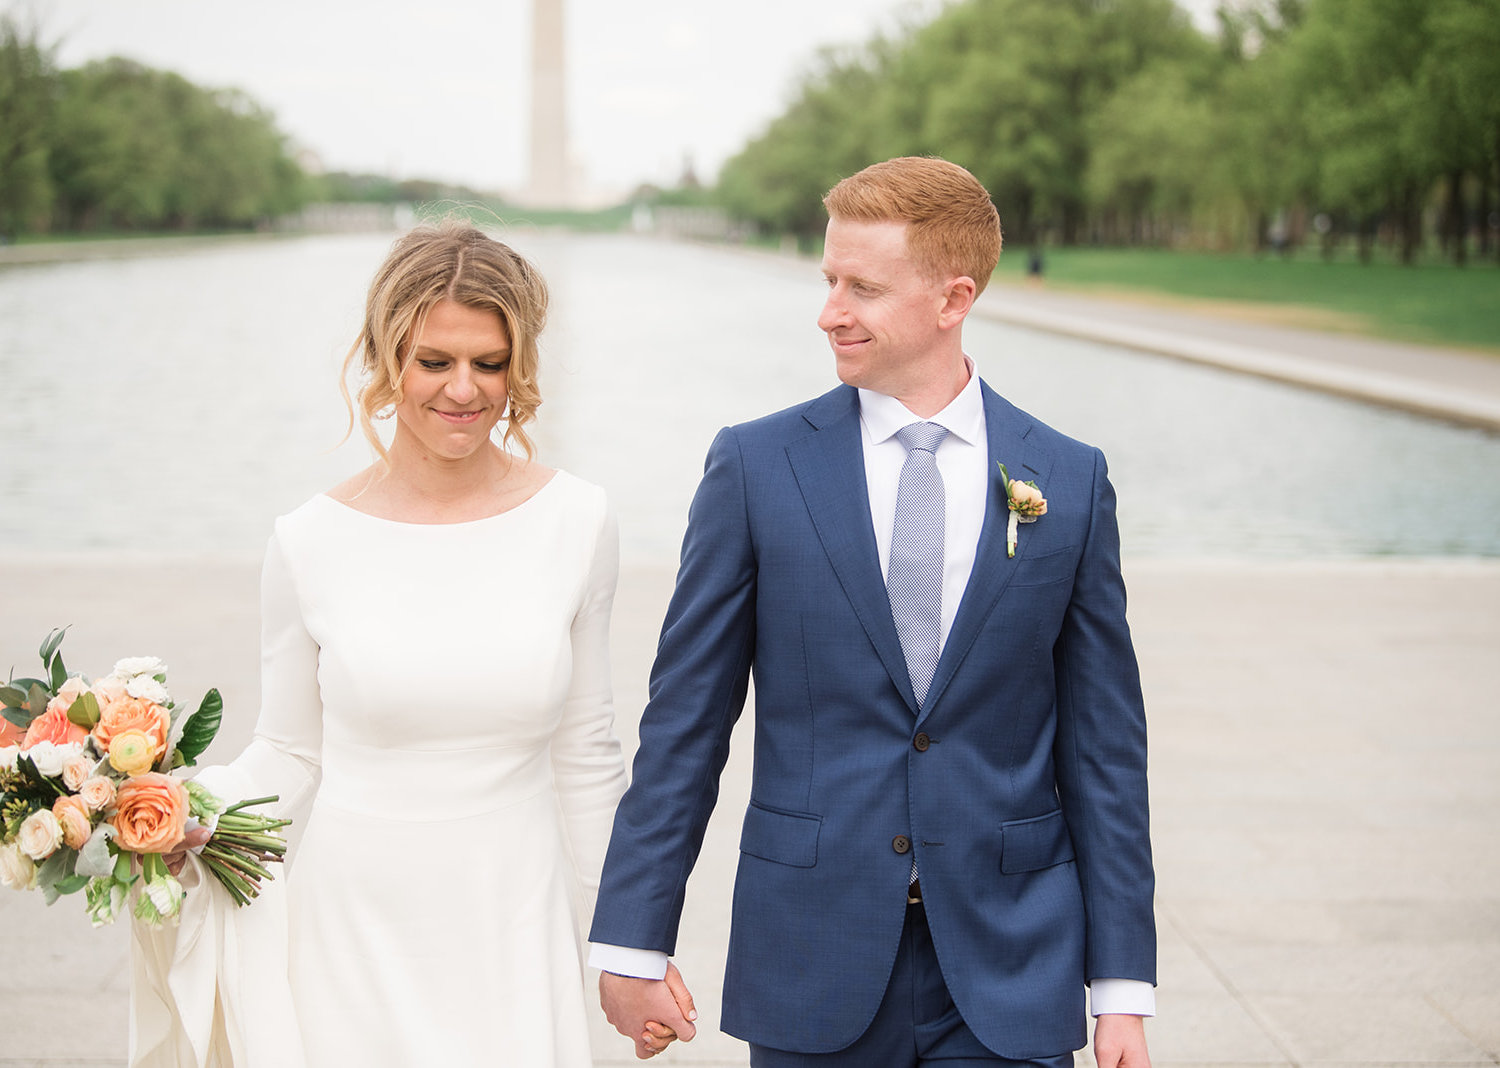 bride and groom smiling as they walk in front of the Washington Monument